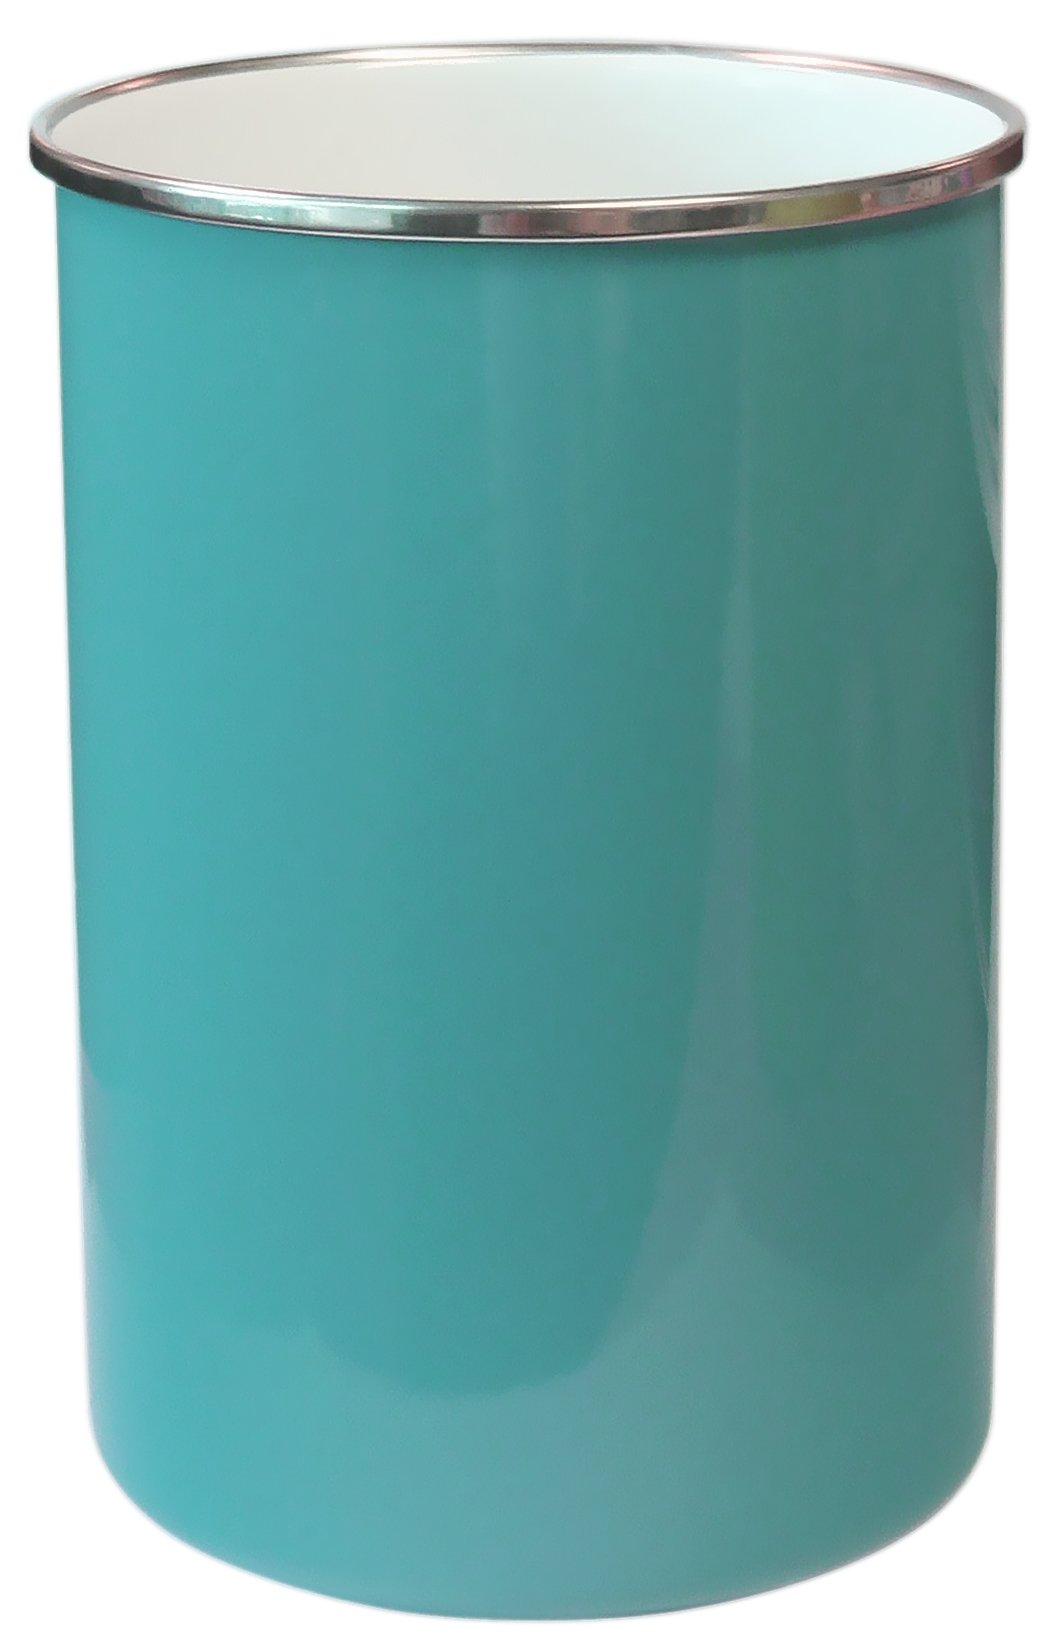 Reston Lloyd 82702 Calypso Basics by Enamel on Steel Utensil Holder, Turquoise, Standard by Reston Lloyd